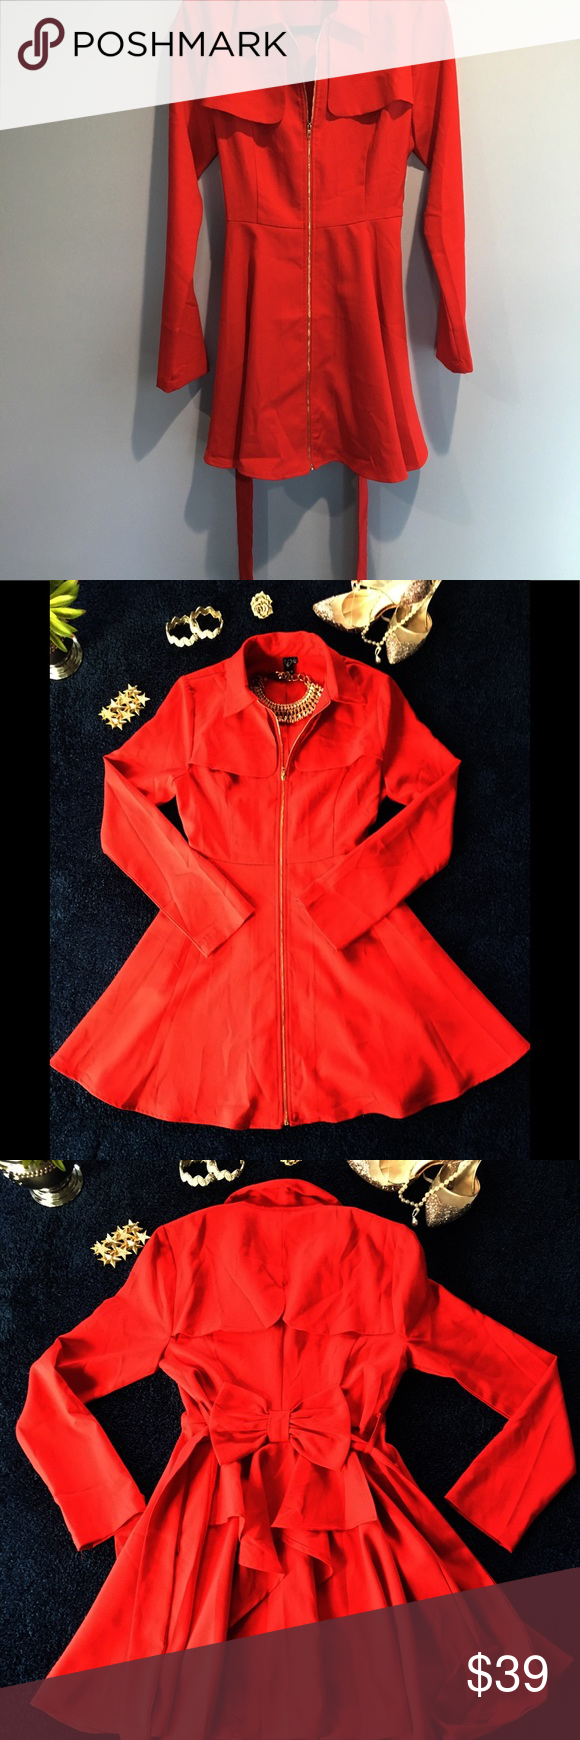 74cdaeee39 WOMEN S WINDSOR ZIP UP TRENCH COAT 💋 This jacket coat by Windsor is ideal  for